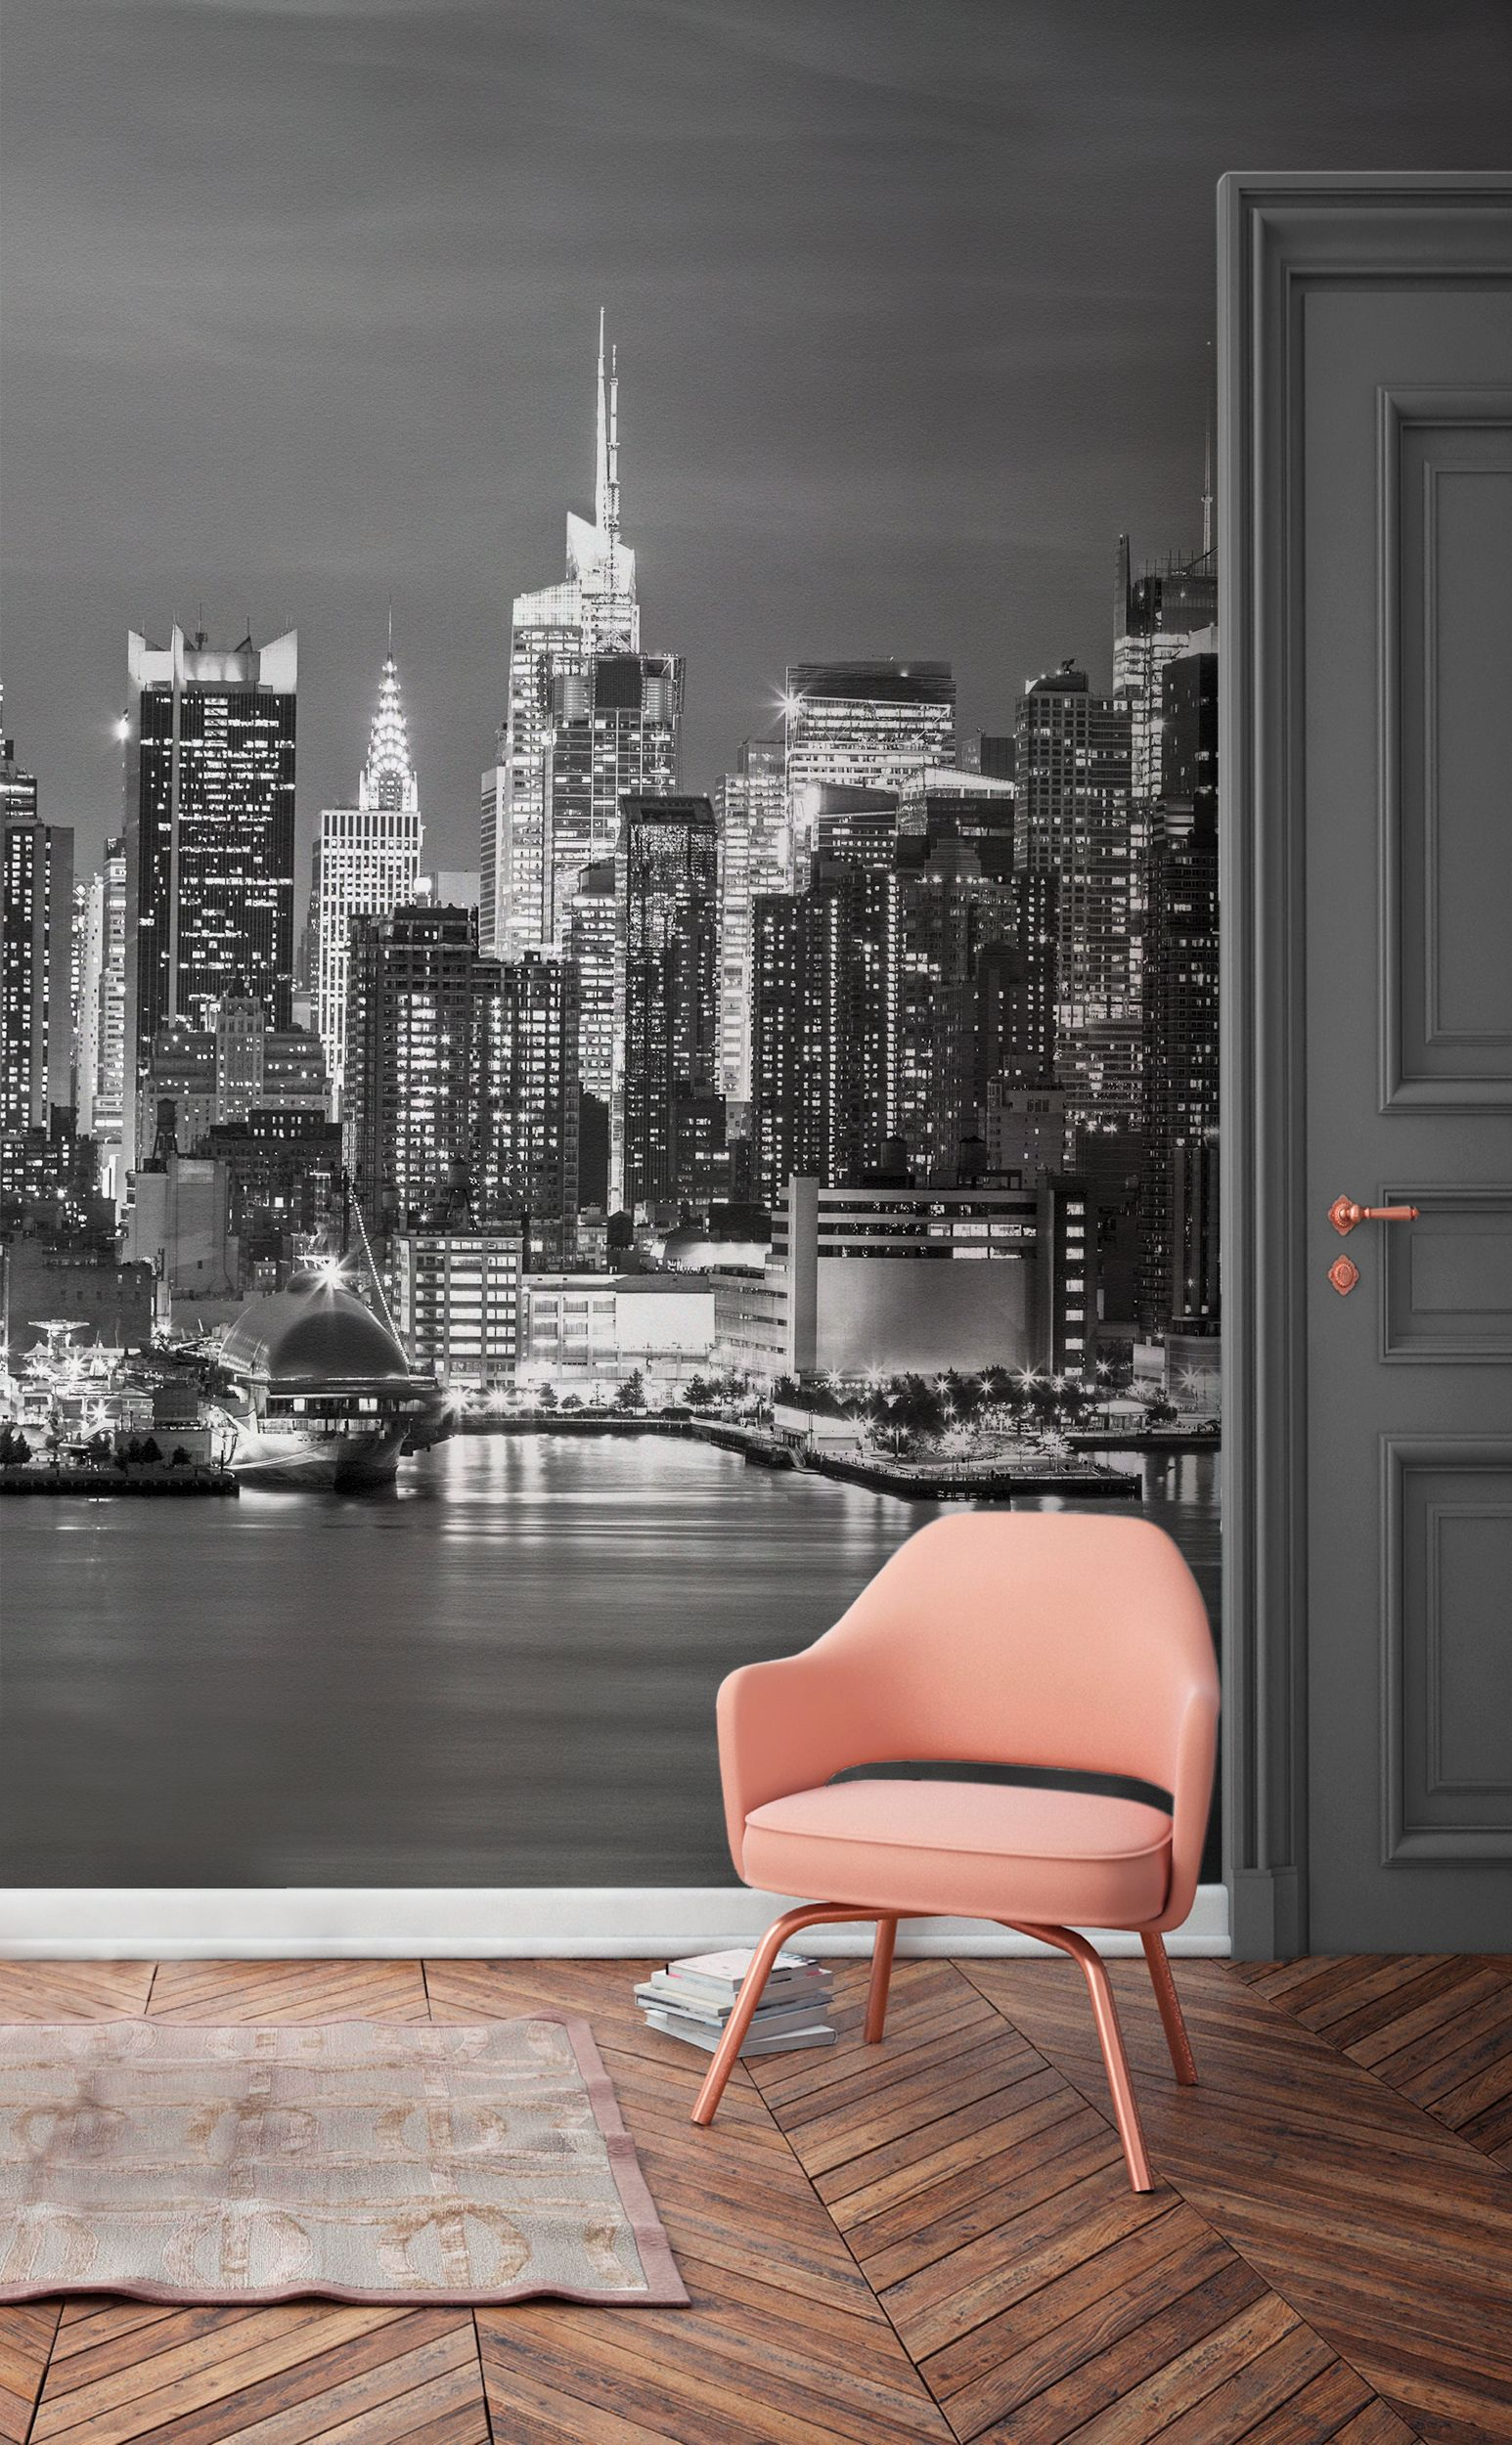 This New York Wallpaper Mural Captures The Glitz And Glamour Of Famous Skyline Ling Lights Contrast Beautifully Against Moody Grey Sky